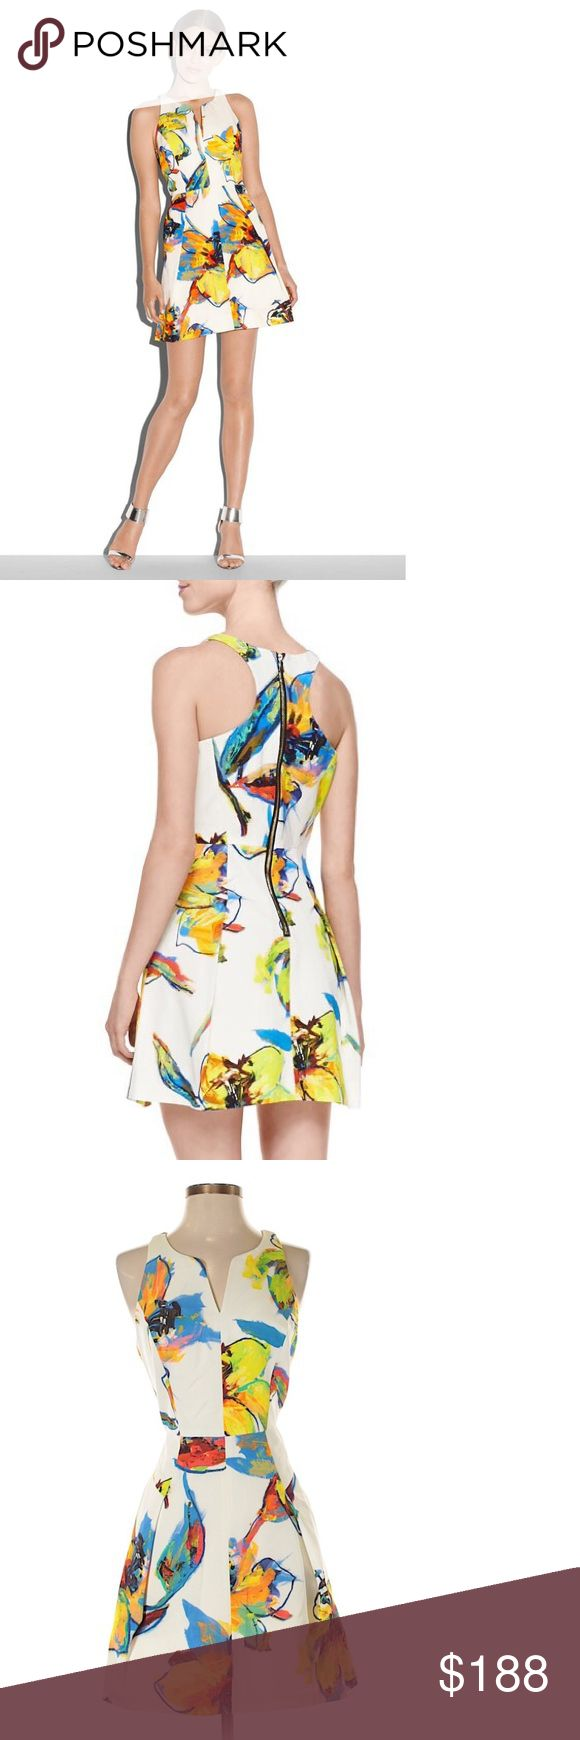 """NWT. Milly Floral Print Dress New with Tag. Excellent Condition. Never worn.  Waist 27"""". Armpit to armpit 17.5"""". Length 34.5"""".  Racerback Dress. Fashioned in Italian Pop Art Floral Print on Faille. Sleeveless racerback dress with flare skirt and side pockets. 58% cotton, 42% viscose.  Have some fun with this playful pop art floral print racerback dress! Pops of yellow and blue add just the right amount of color to your look. #4128 Milly Dresses"""